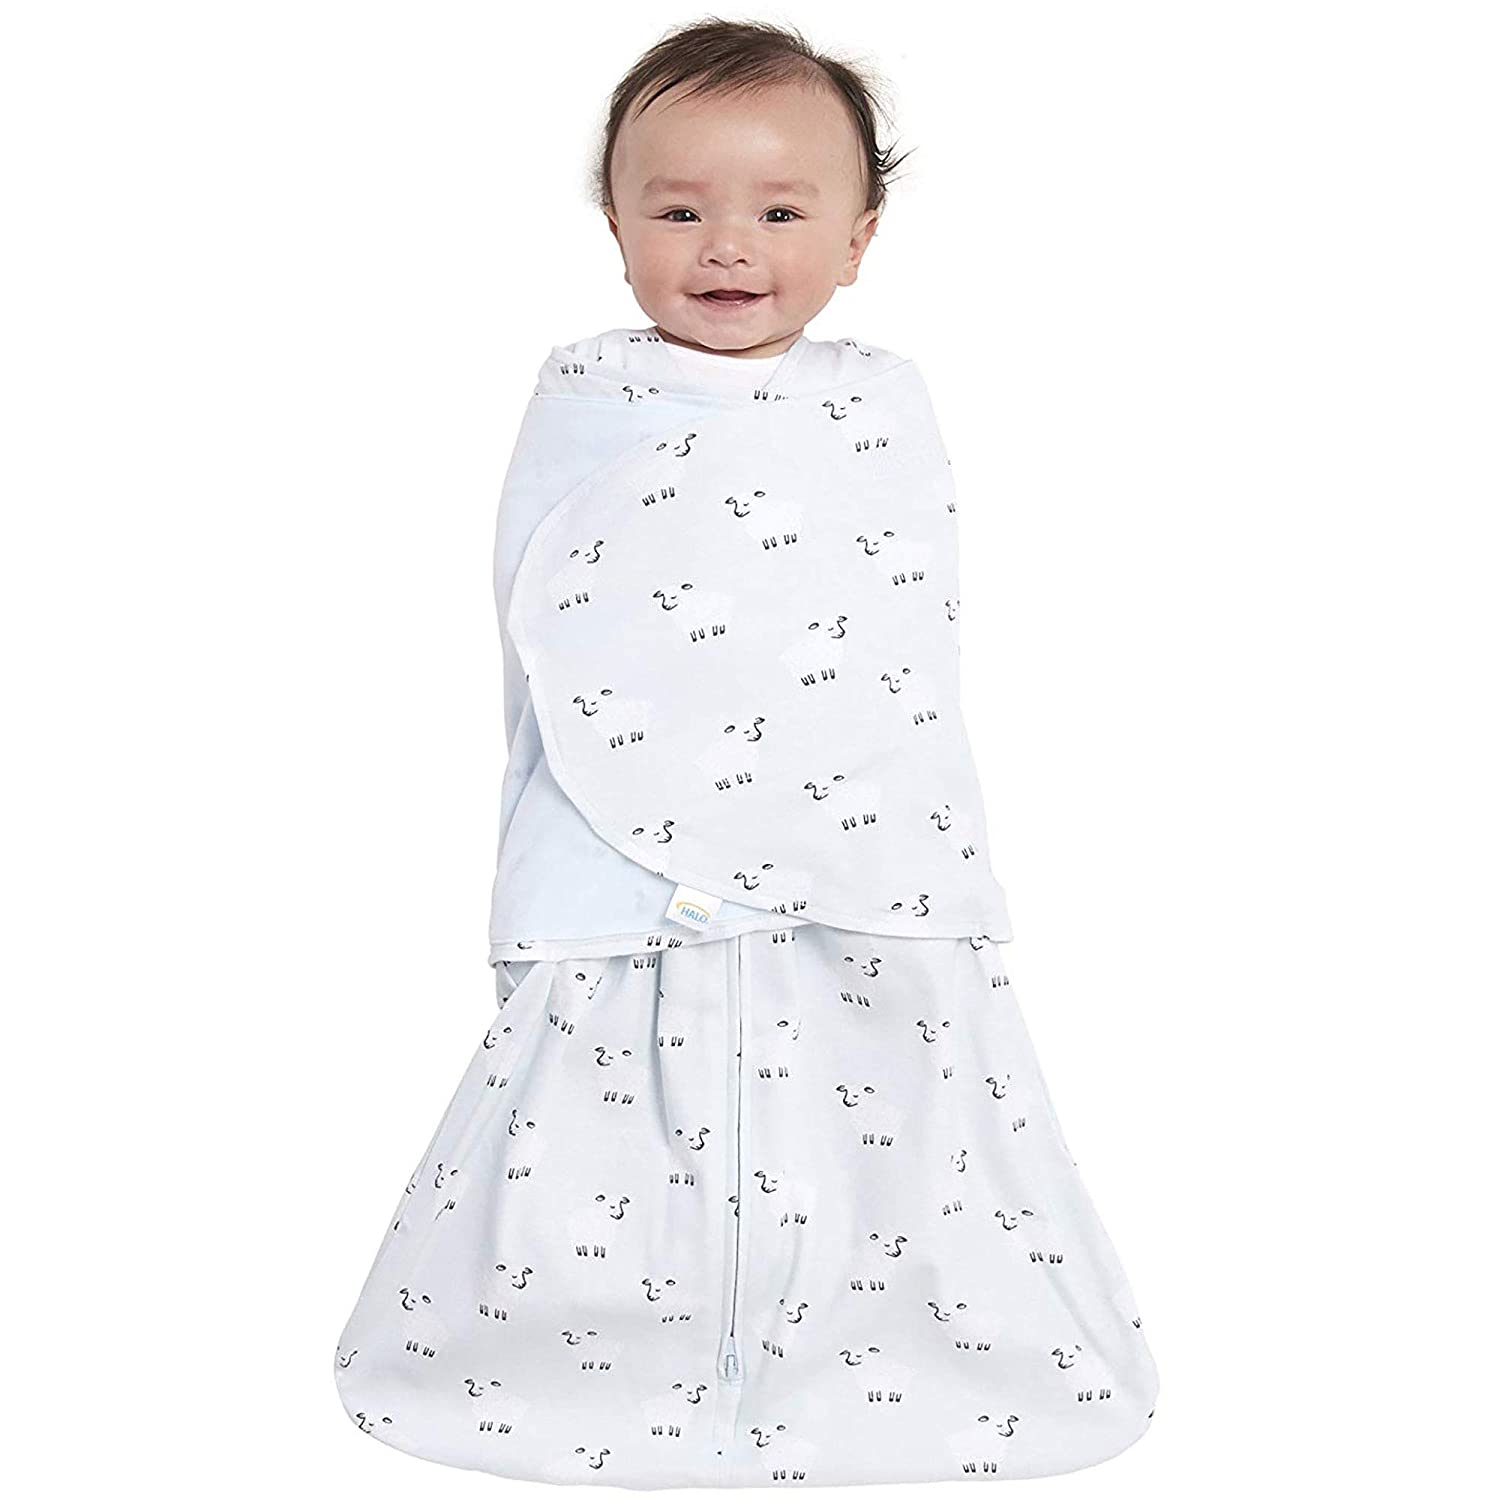 Baby in a Swaddle Blanket